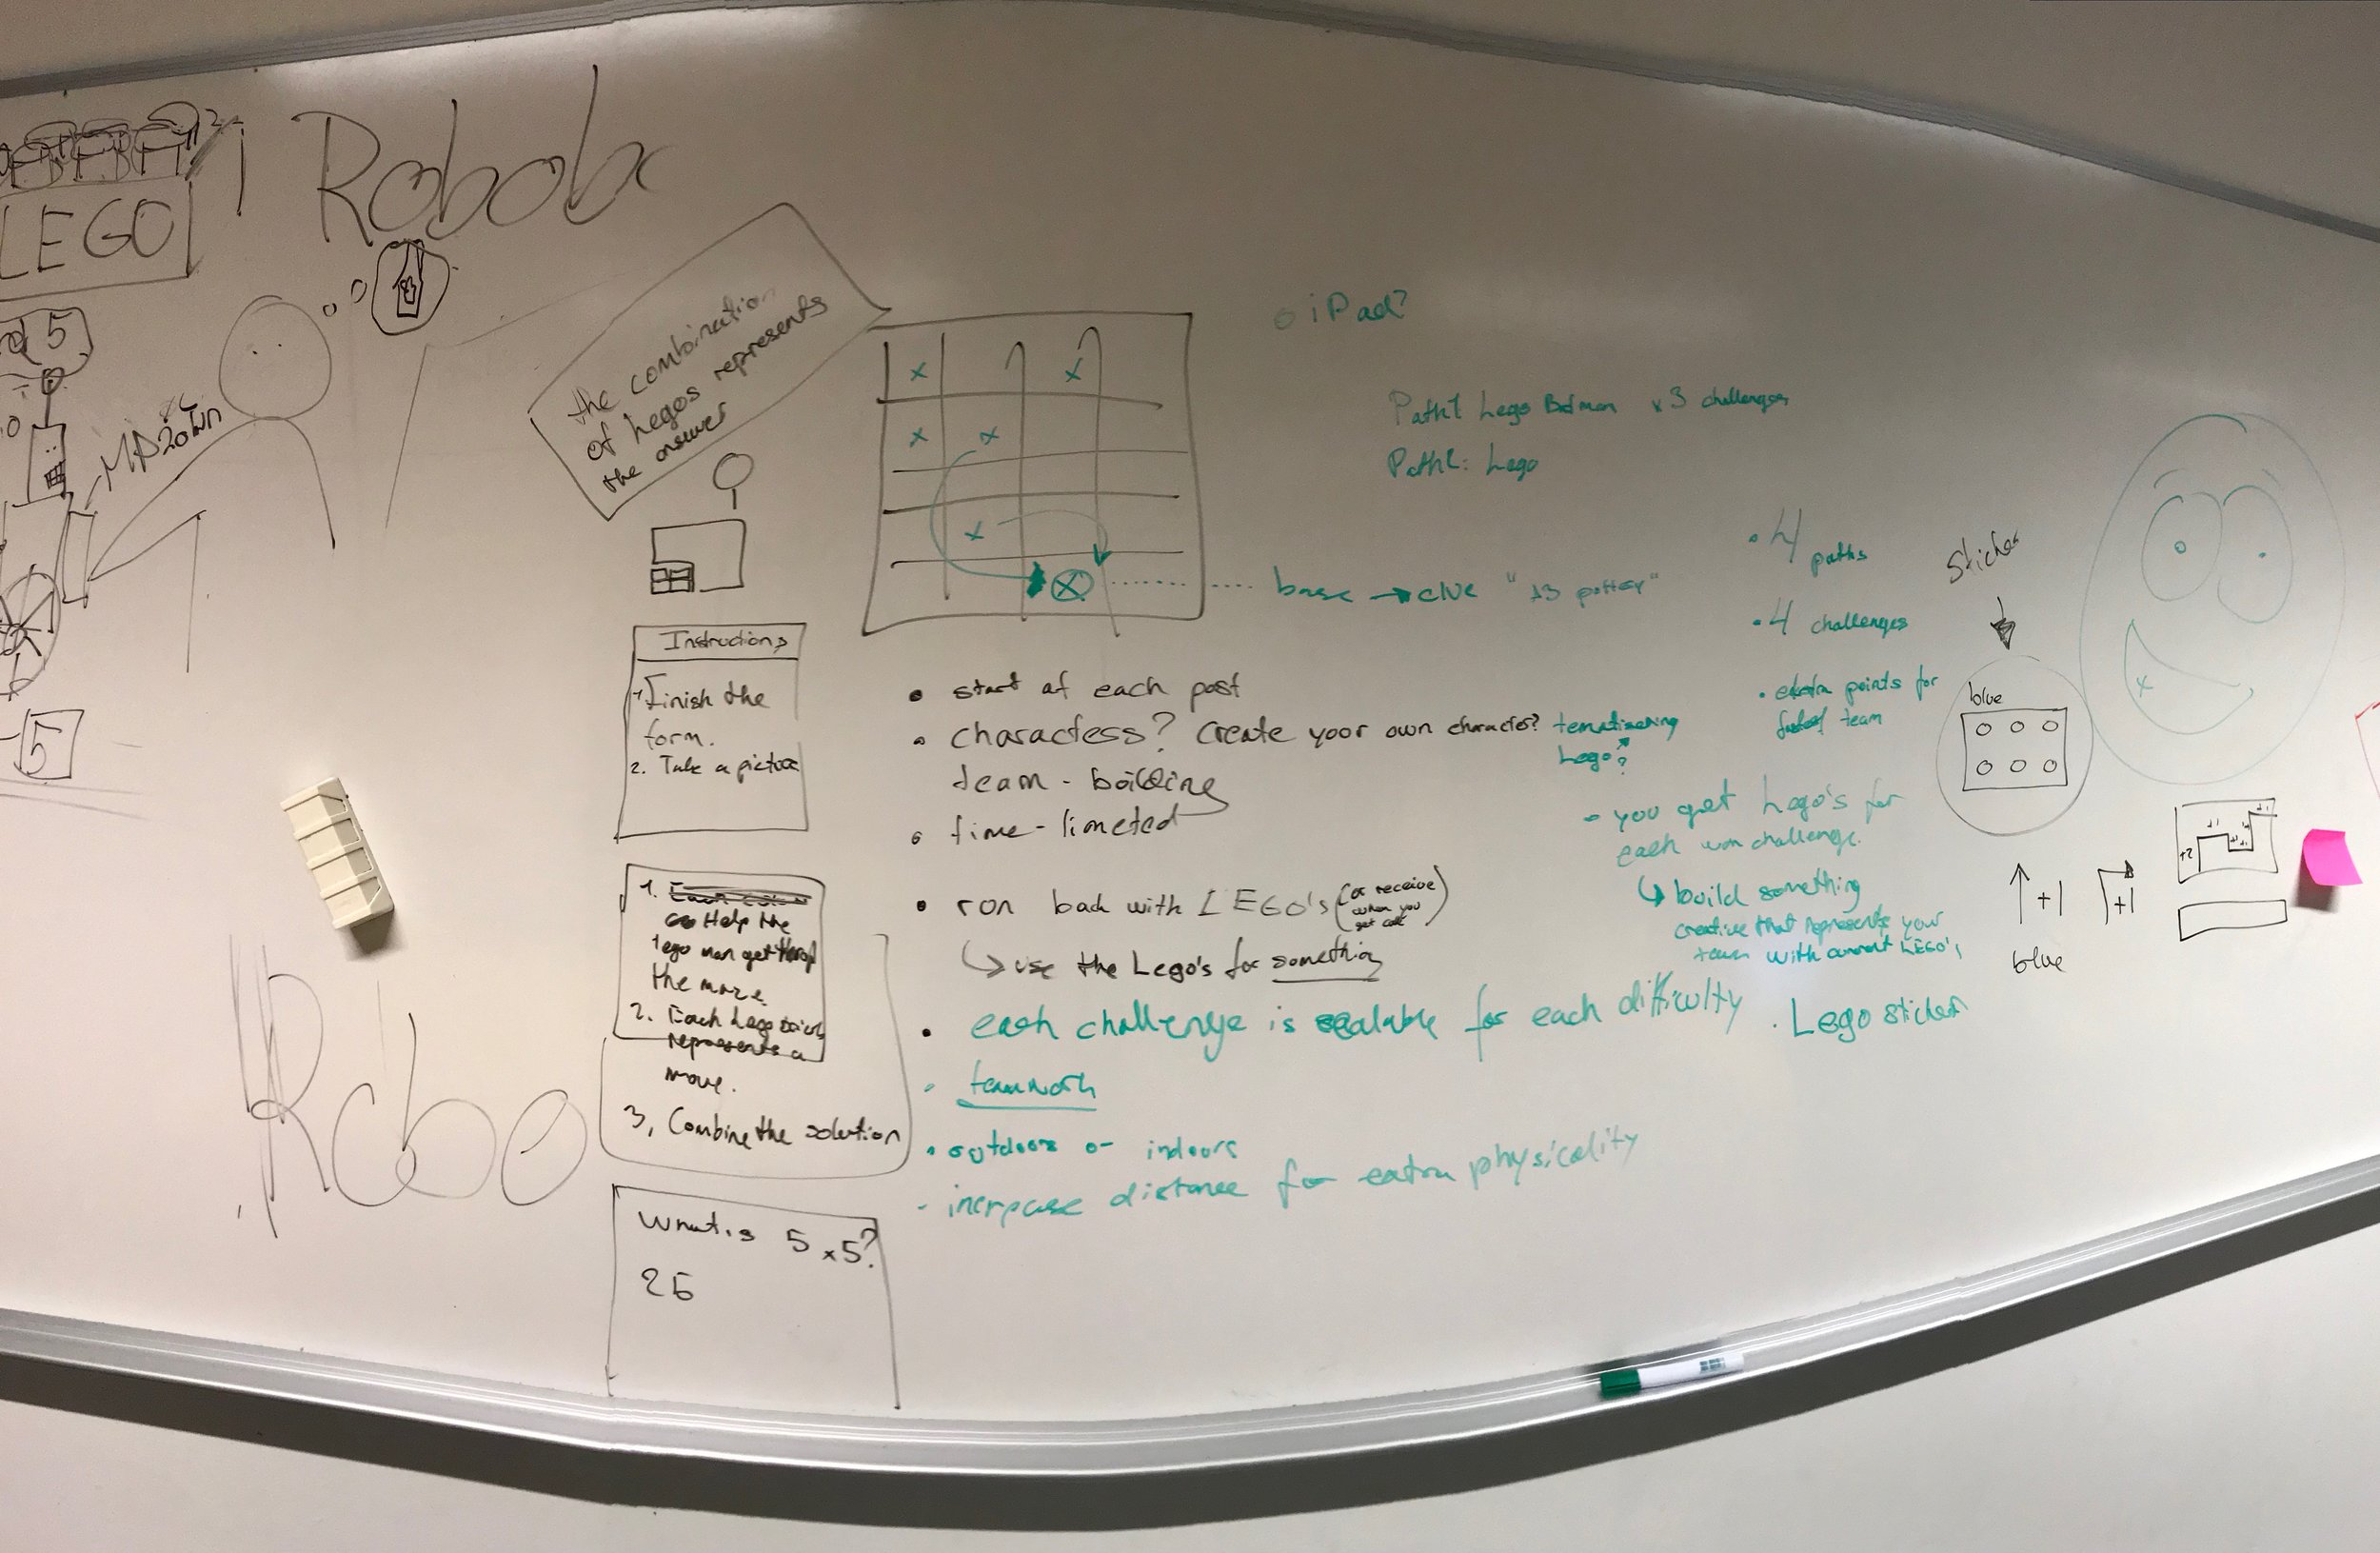 Although our assigned tasks looks like a mess, these notes on the board outlines the weekend's upcoming work.